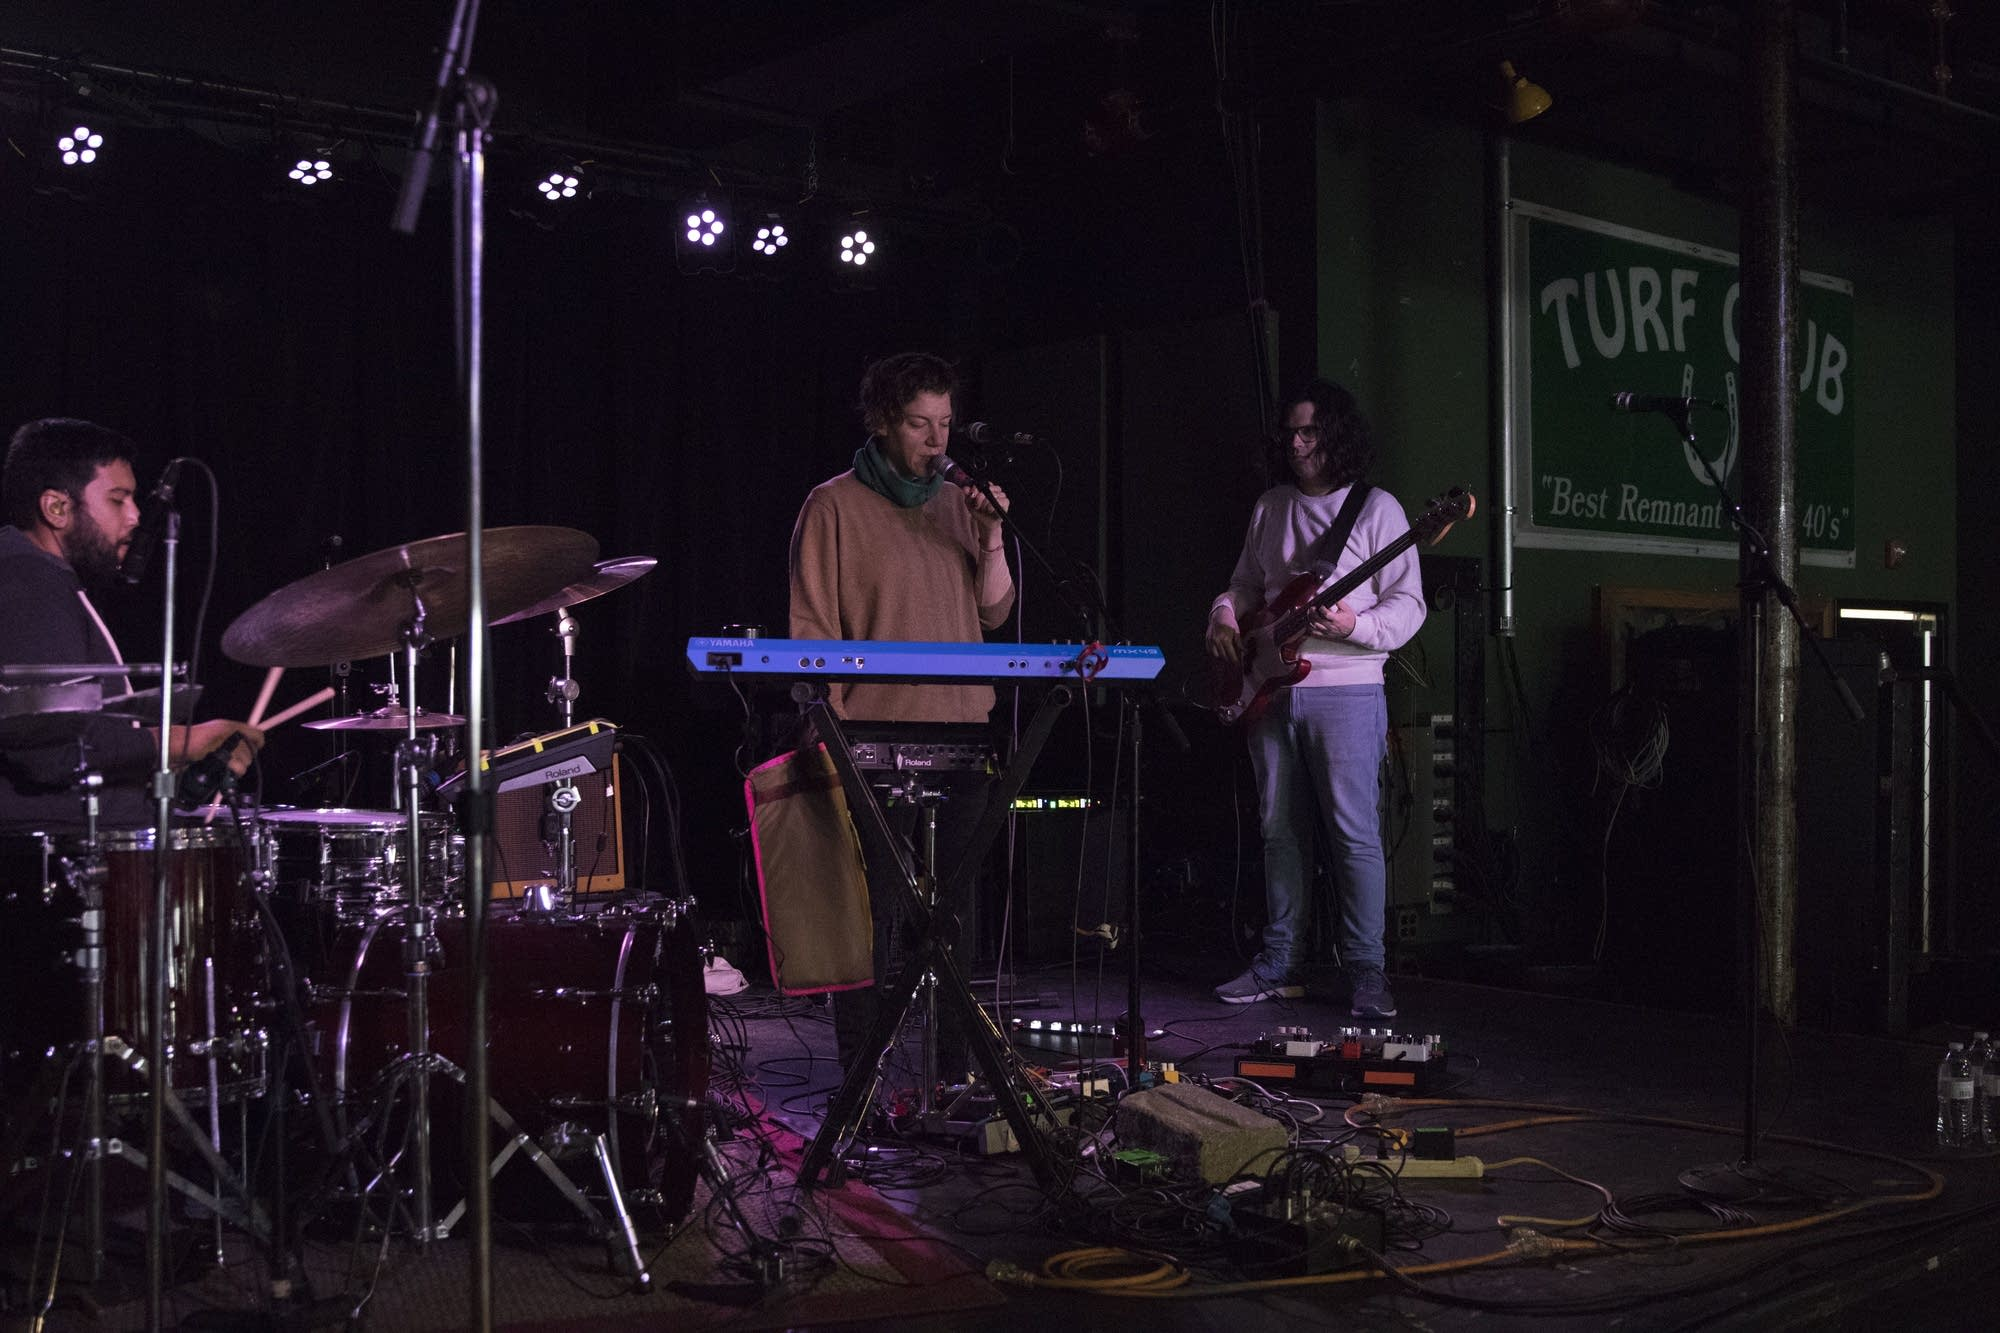 Tune-Yards MicroShow at the Turf Club